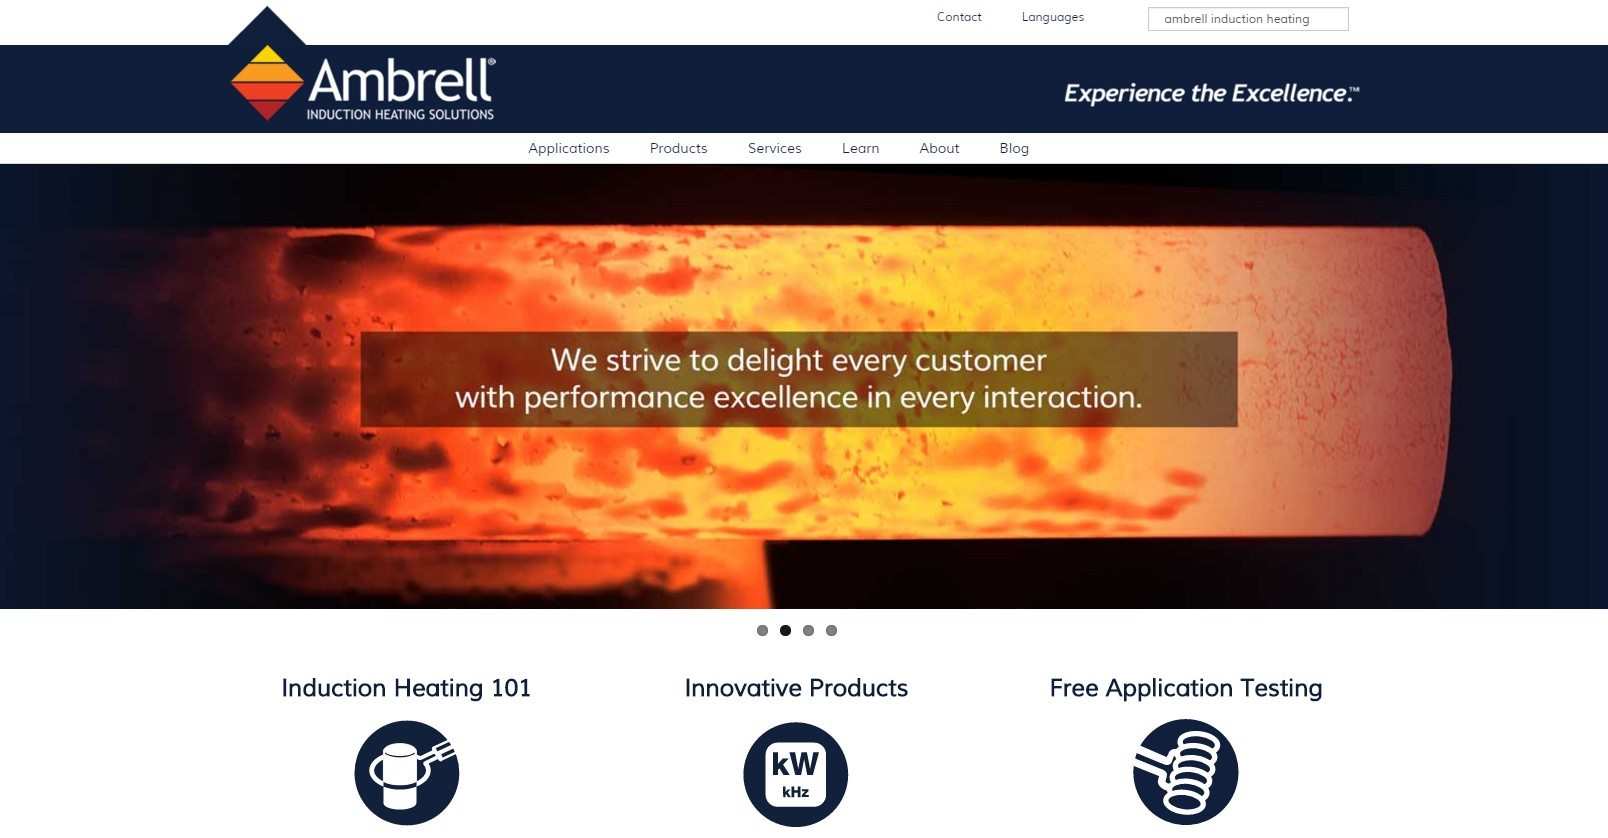 Image of the New Ambrell Website